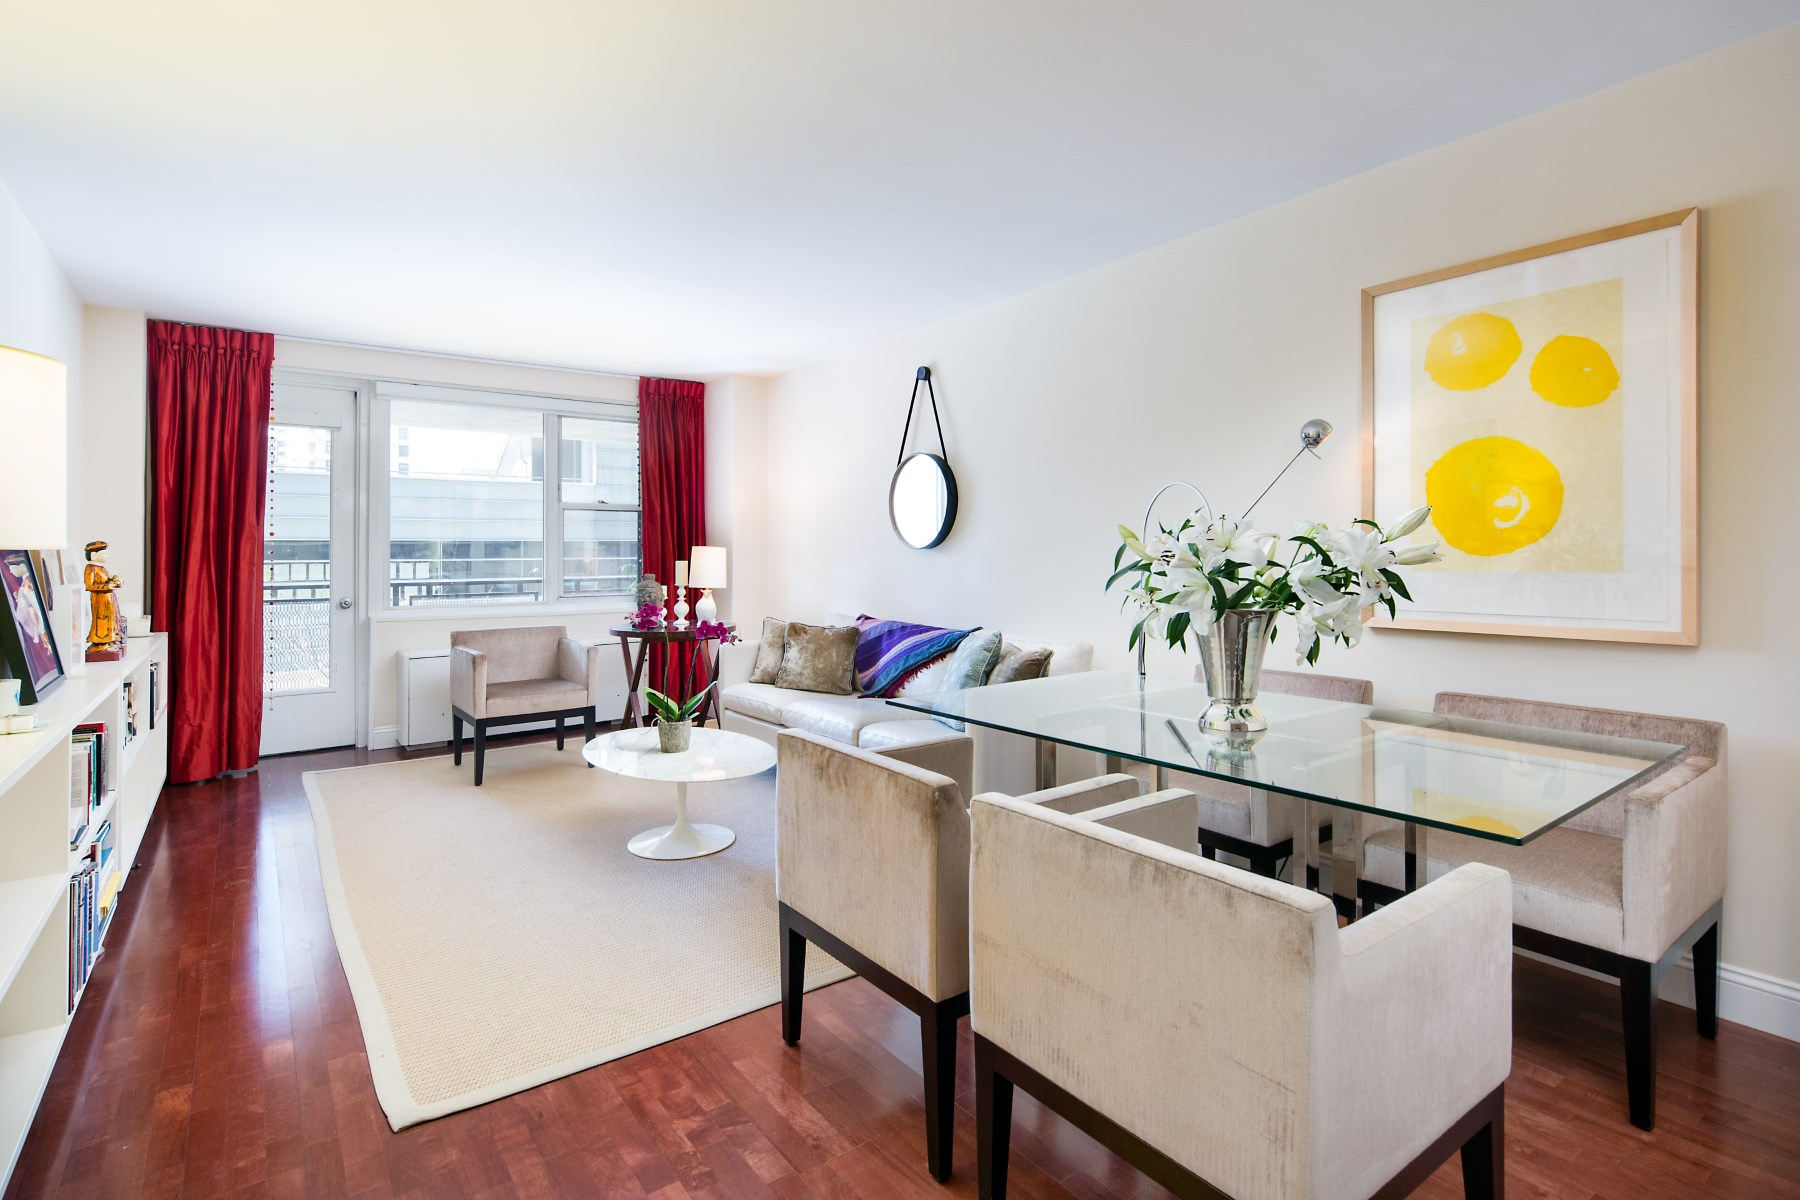 Co-op for Sale at 165 West 66th Street 165 West 66th Street Apt 4D New York, New York, 10023 United States